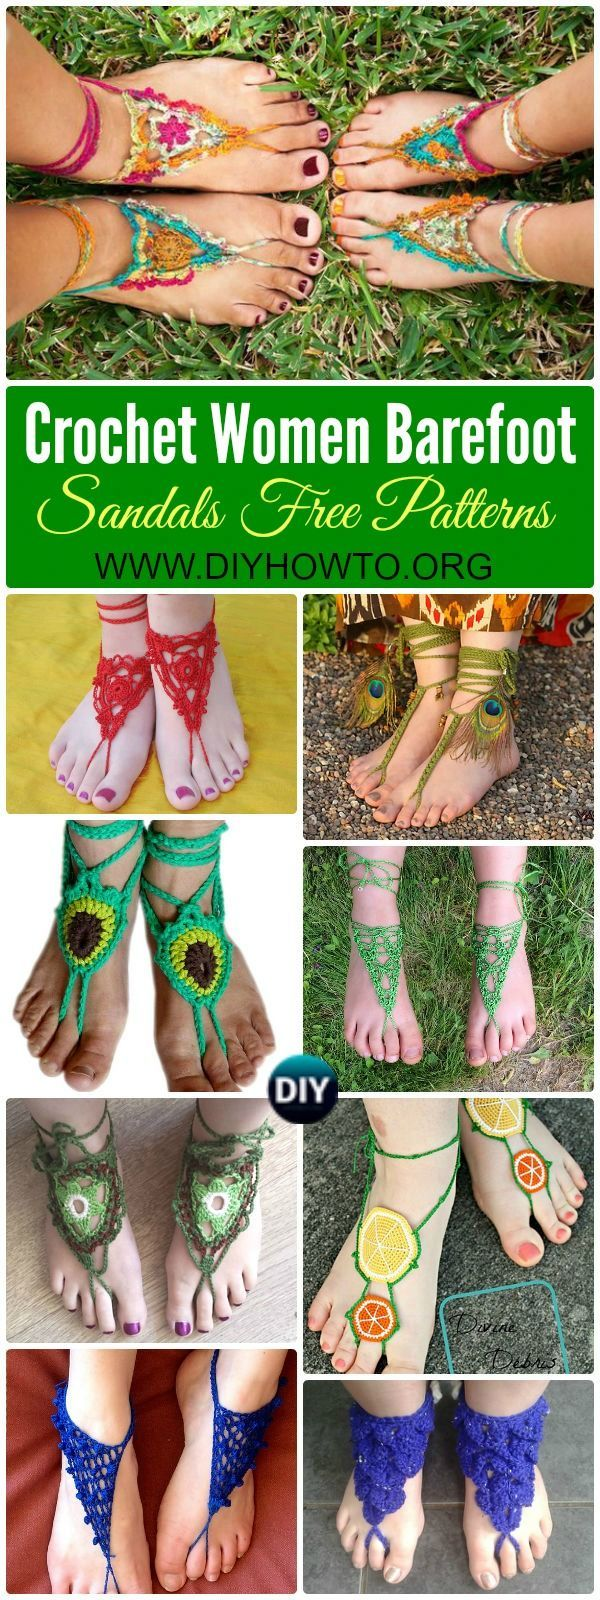 Free Crochet Patterns For Crochet Barefoot Sandals So Many Options